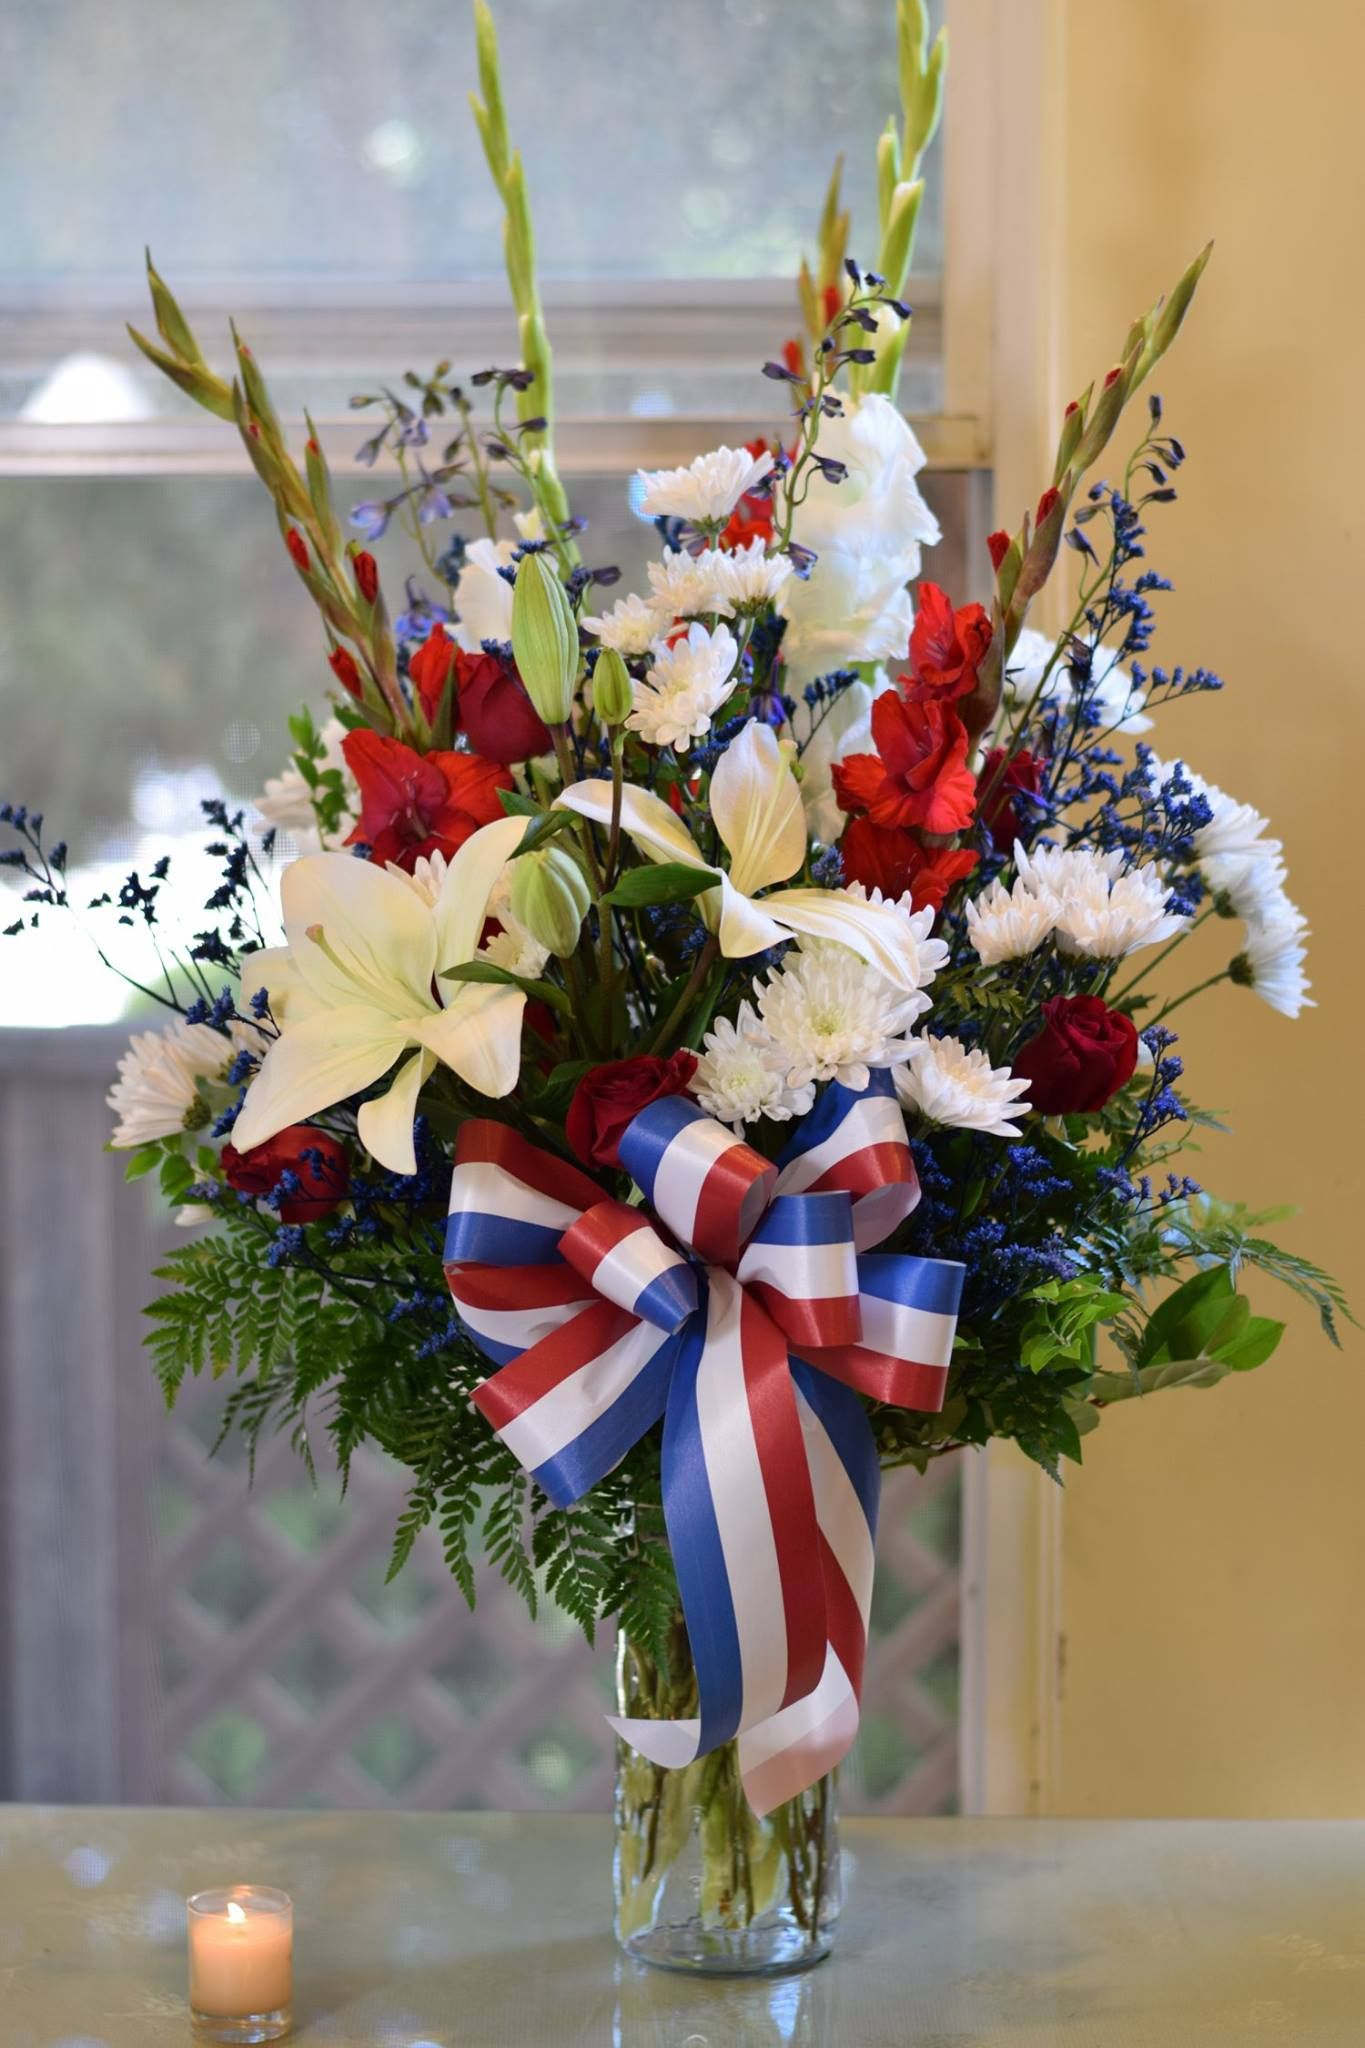 A red, white and blue tribute for a veteran. Same day